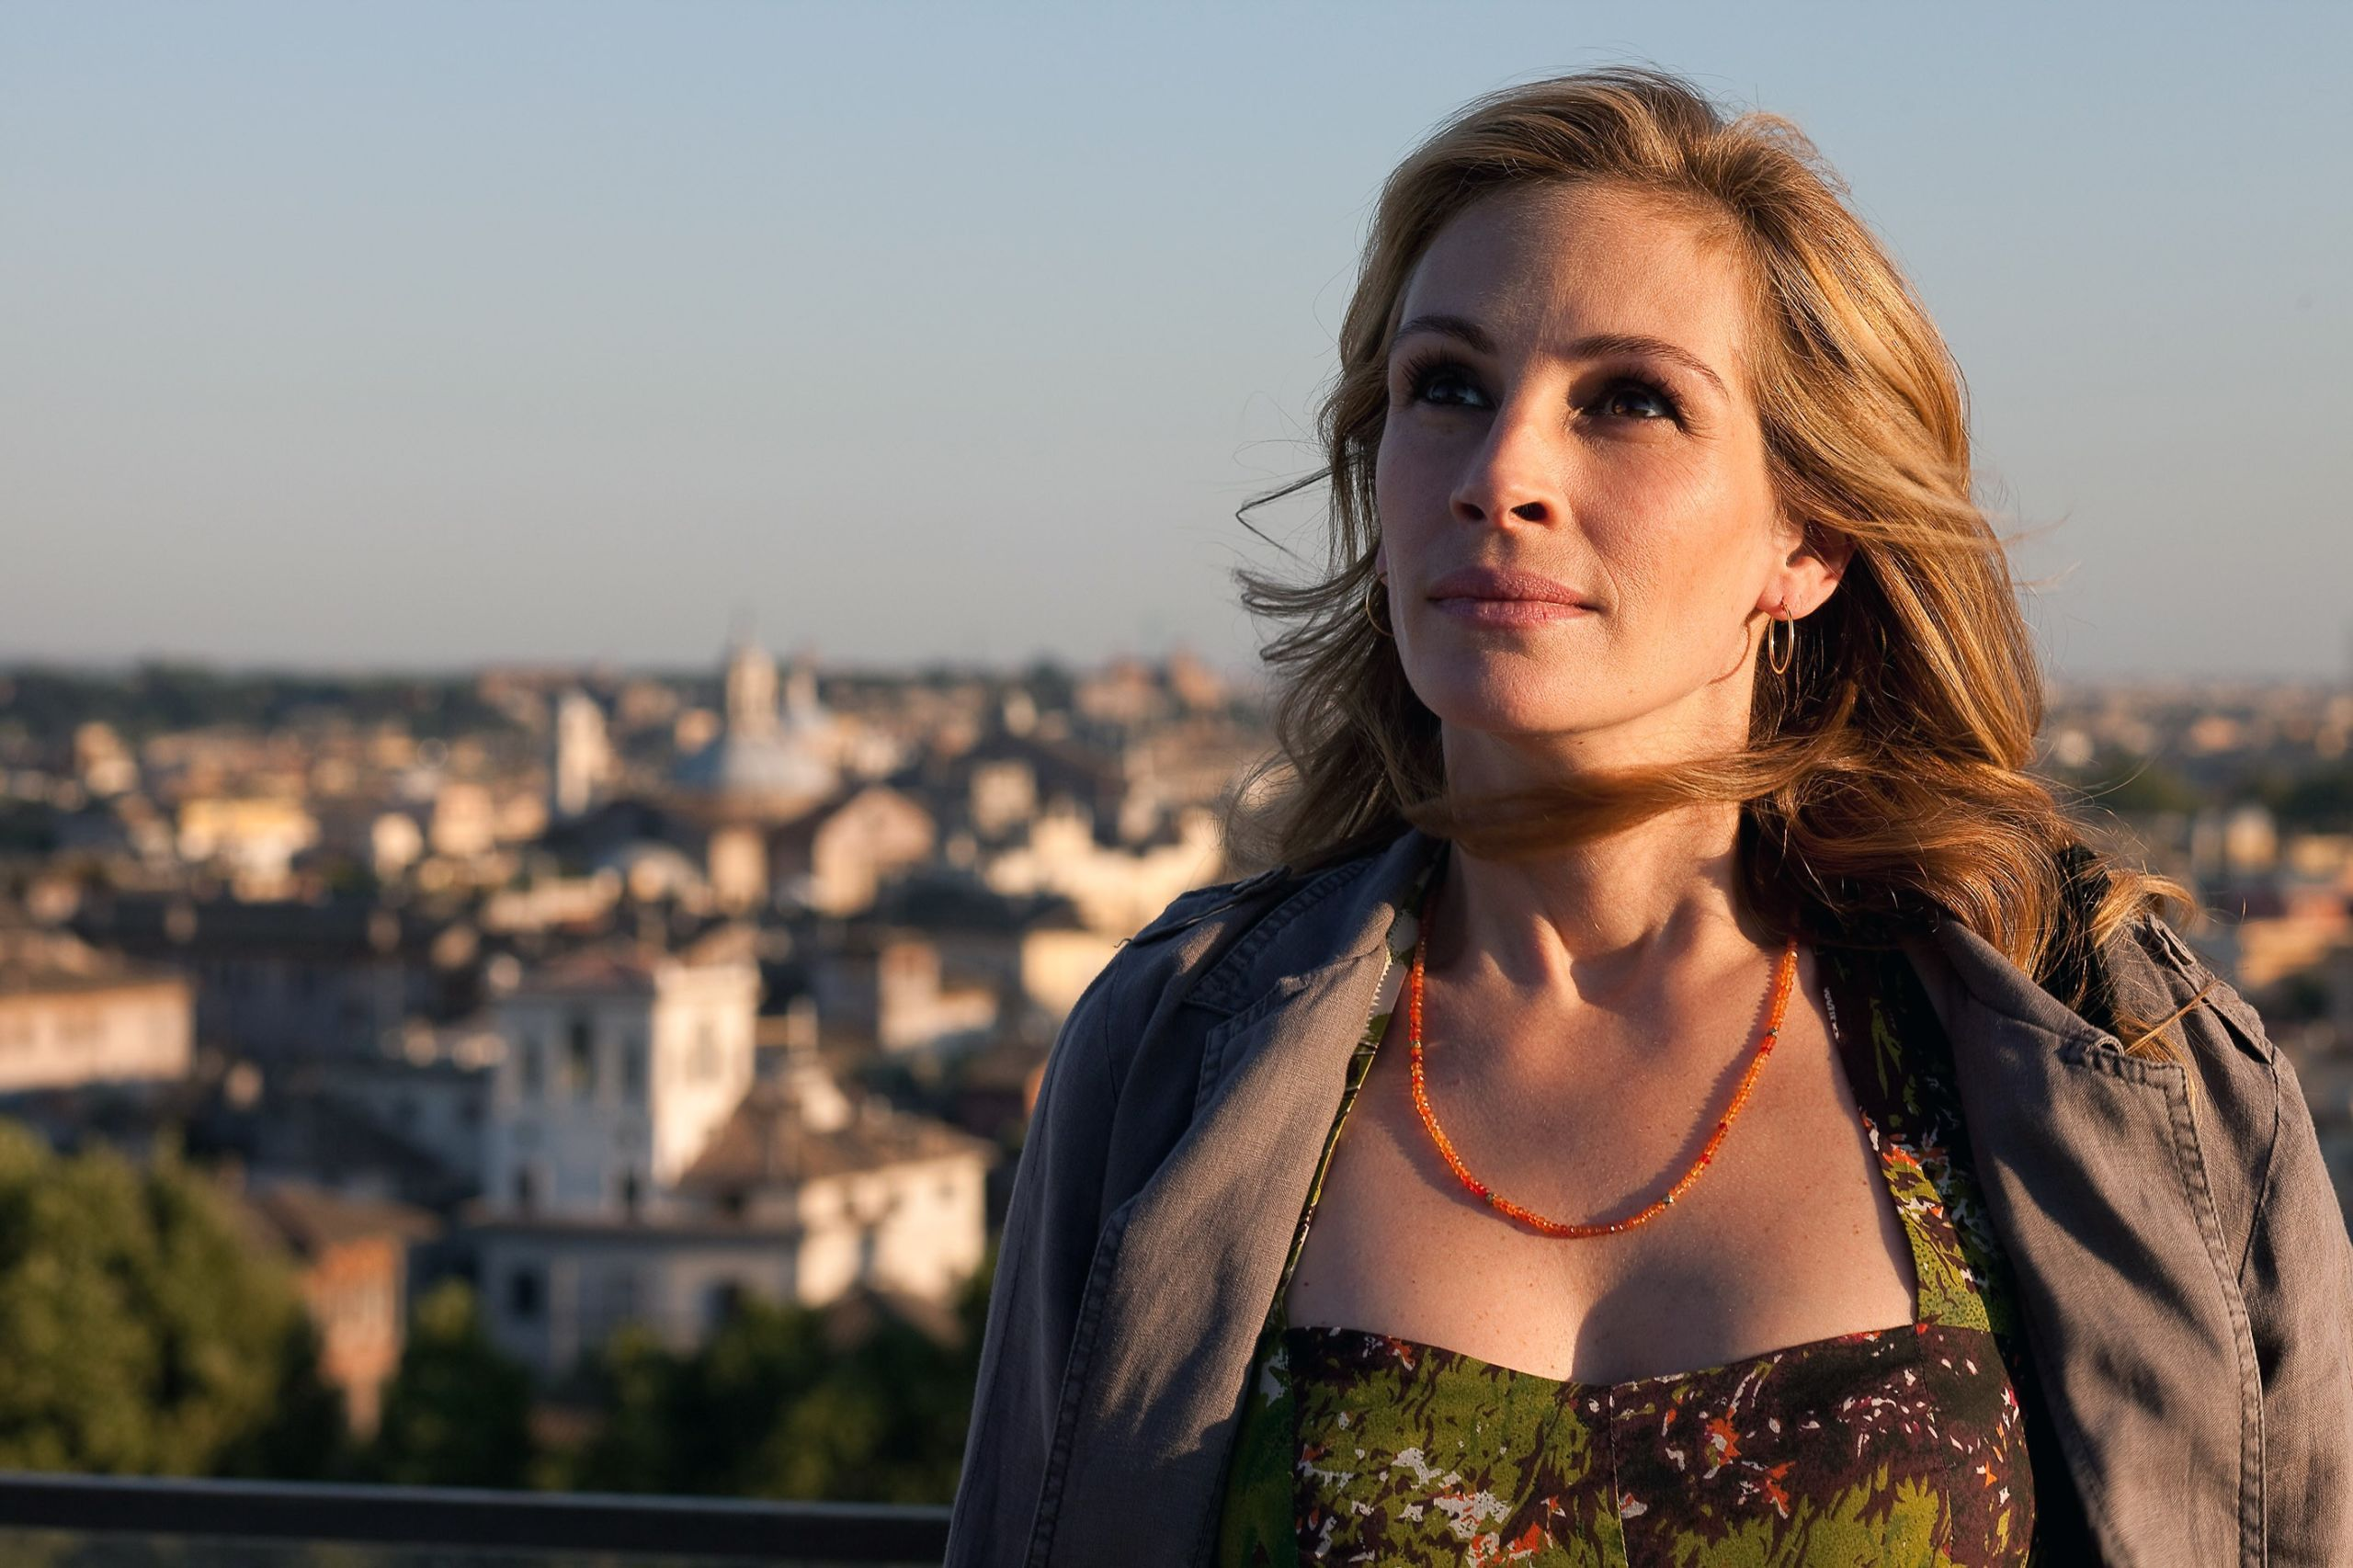 1482355968 syn hbz 1448033793 julia roberts in eat pray love